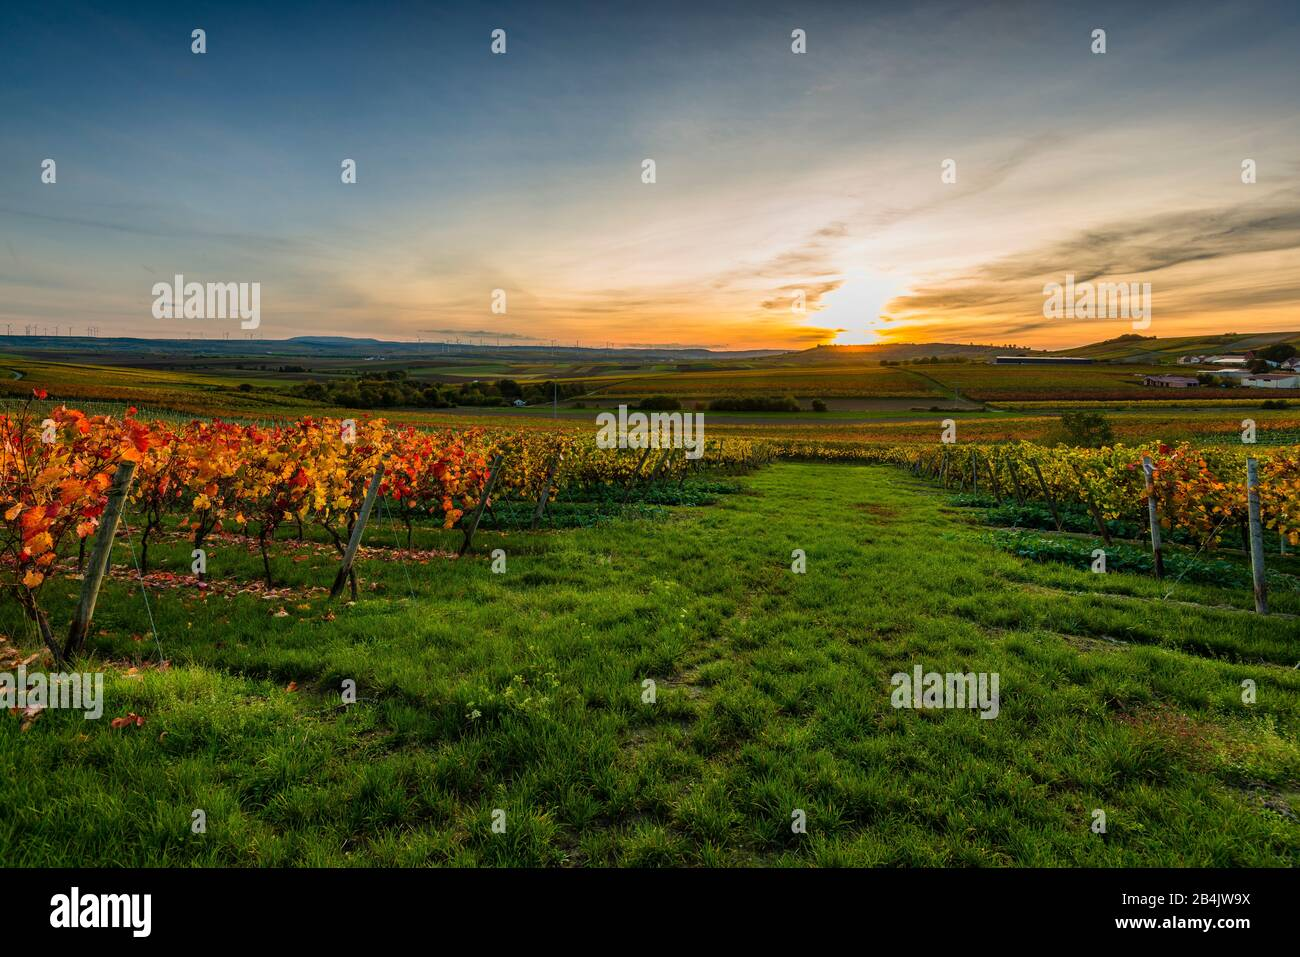 Autumn in the vineyard in a gently undulating landscape in Rheinhessen, rich bright colors in October, evening atmosphere with warm light, golden October at its best, with sunset Stock Photo